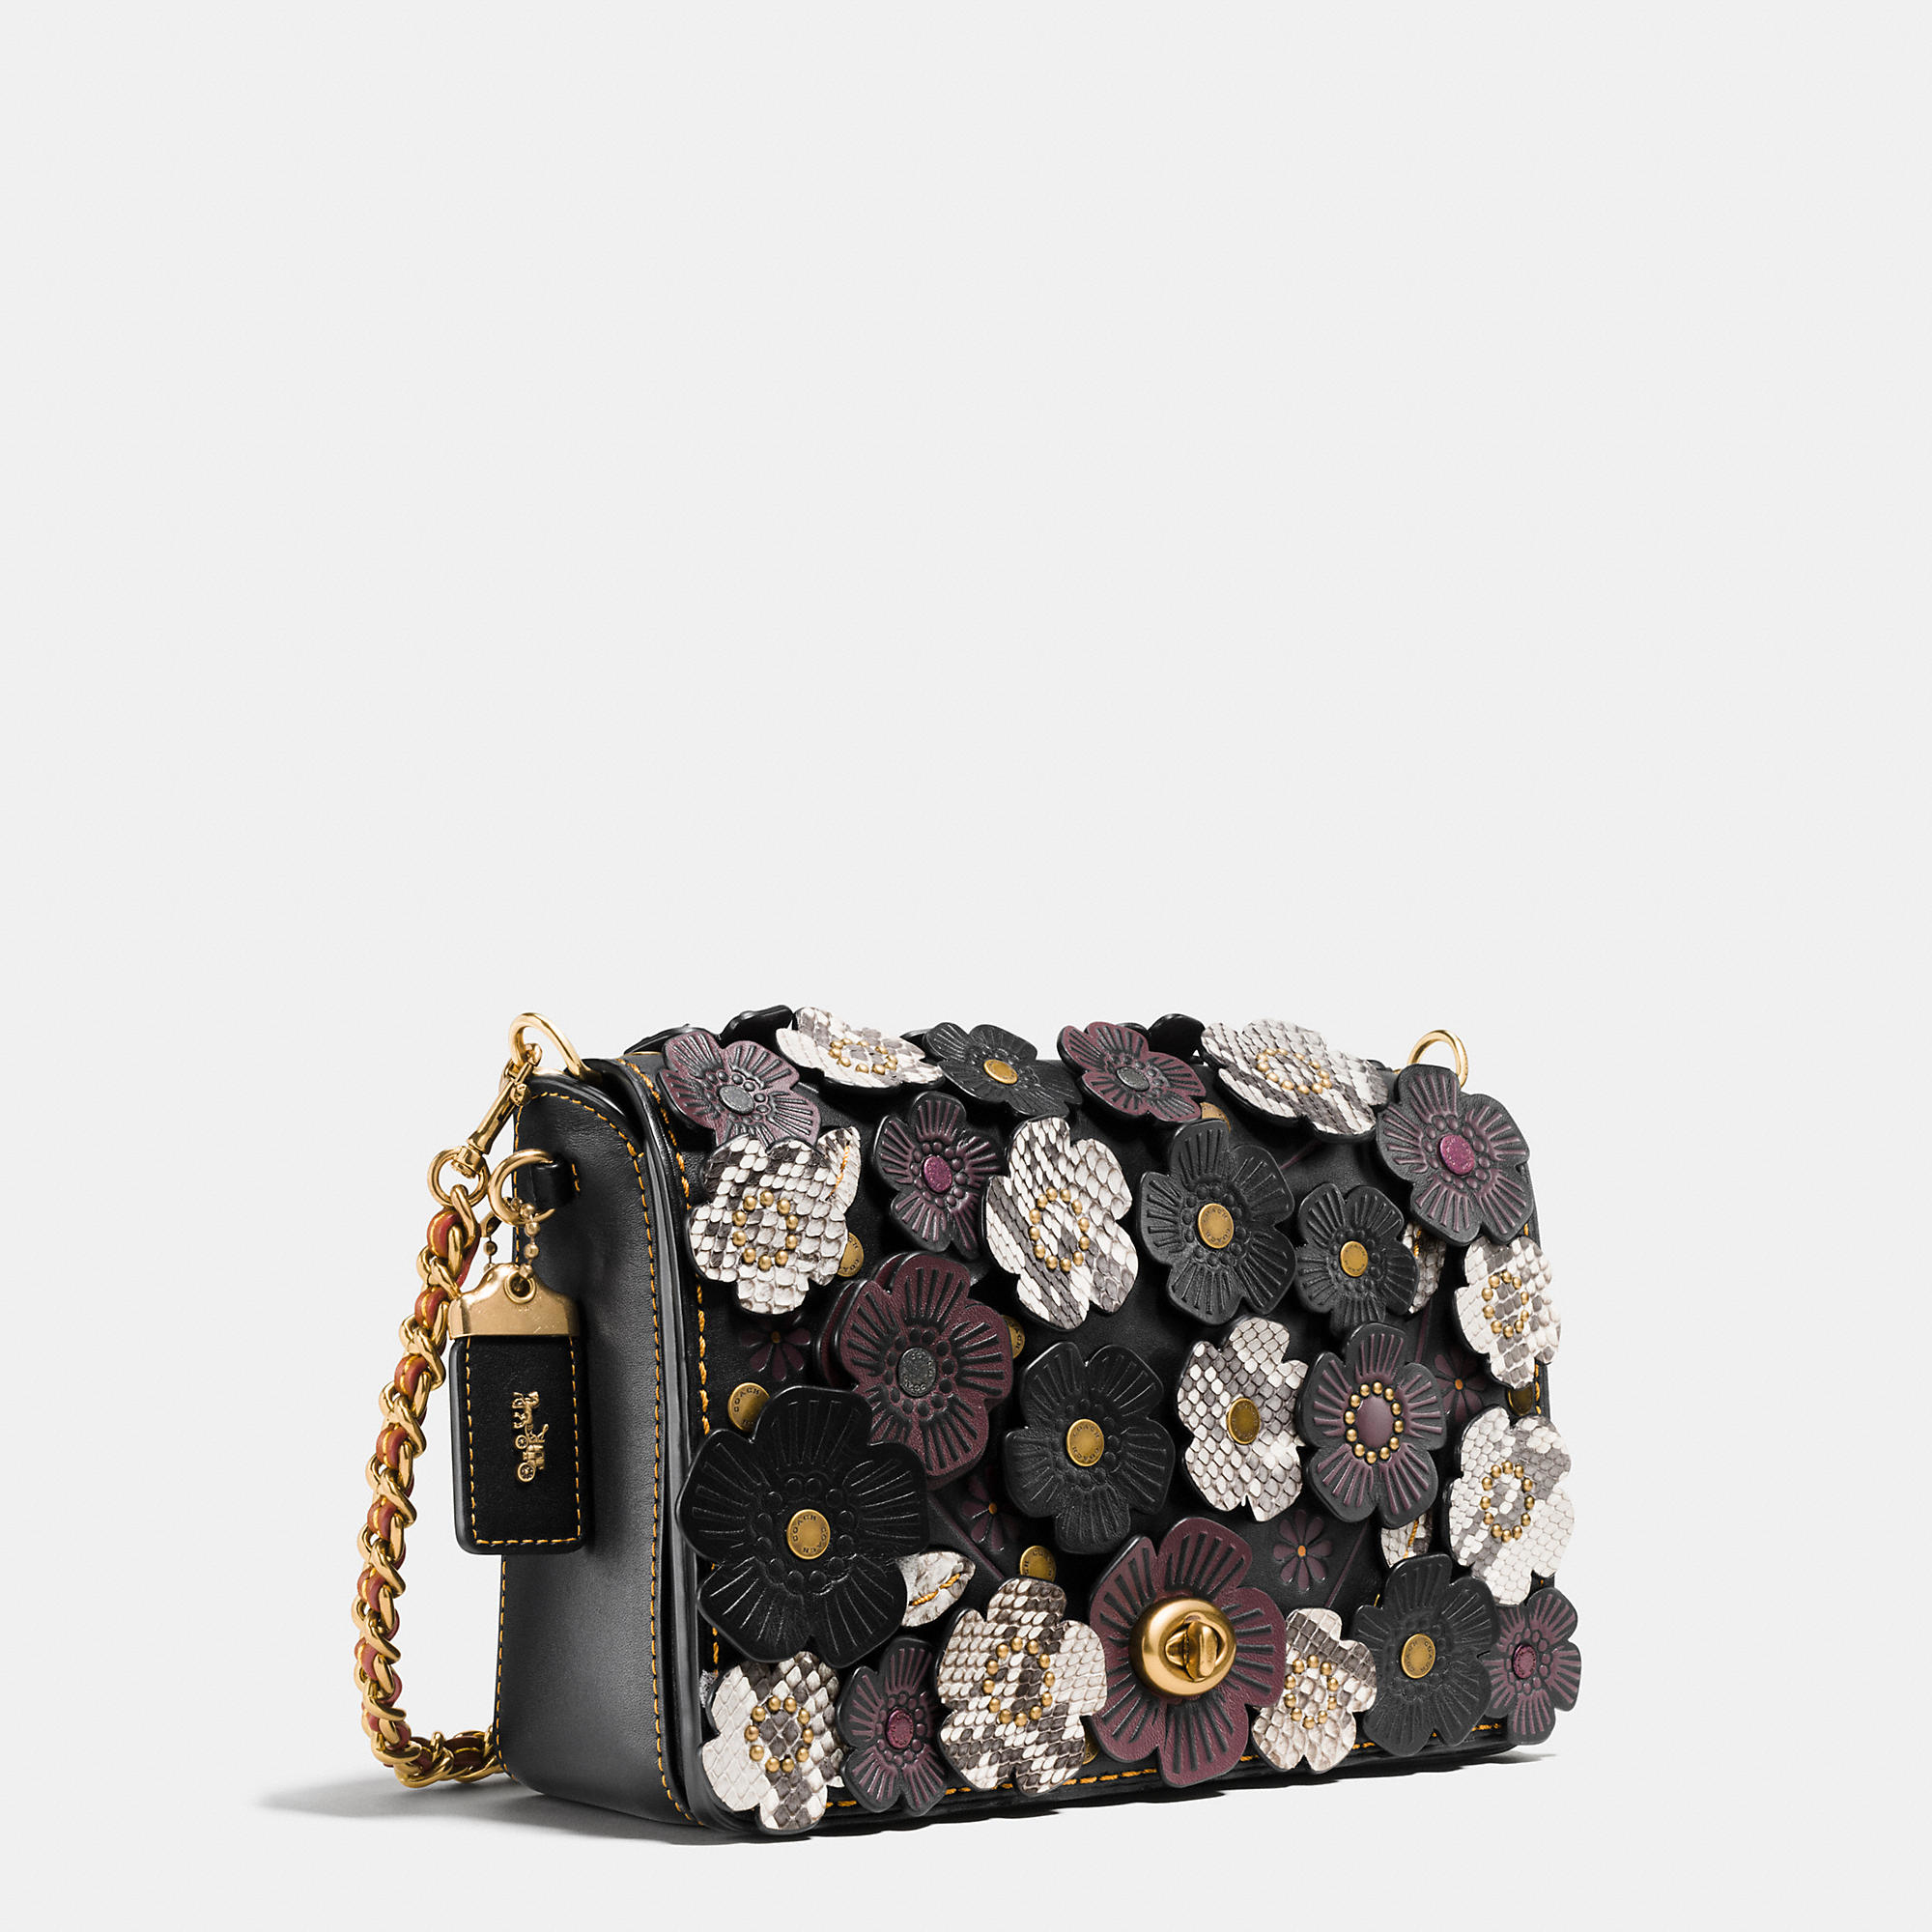 ... greece lyst coach exotic tea rose applique dinky crossbody 24 in  glovetanned leather in black 01130 502148926ac17